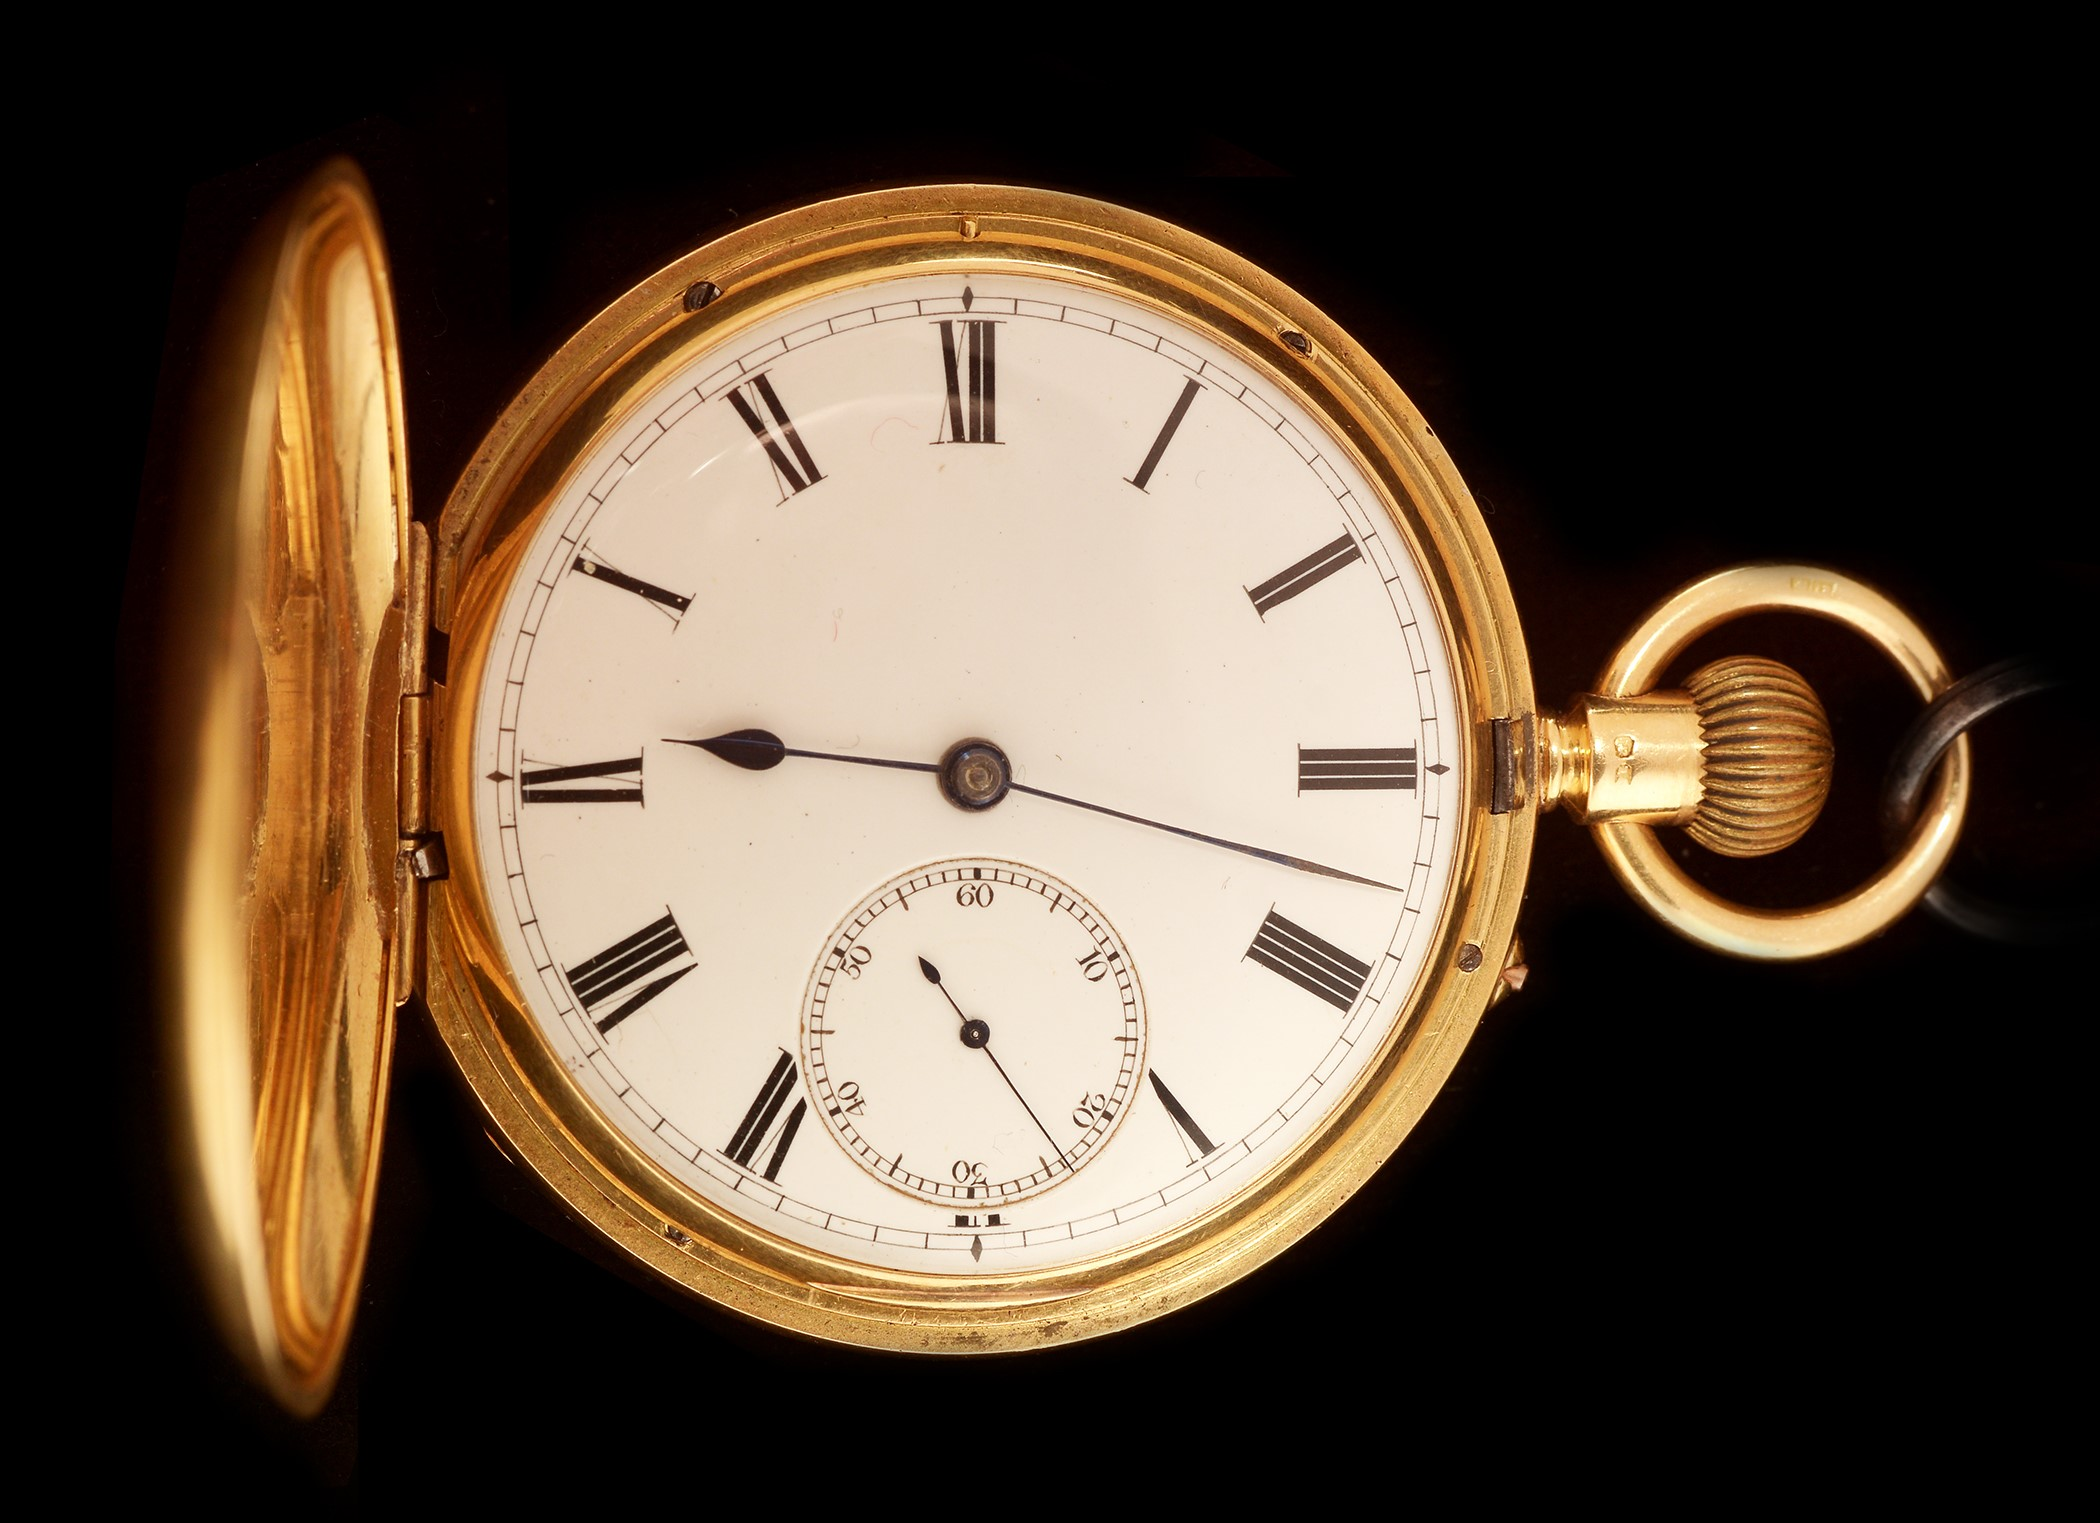 Lot 2 - 18k gold hunter pocket watch